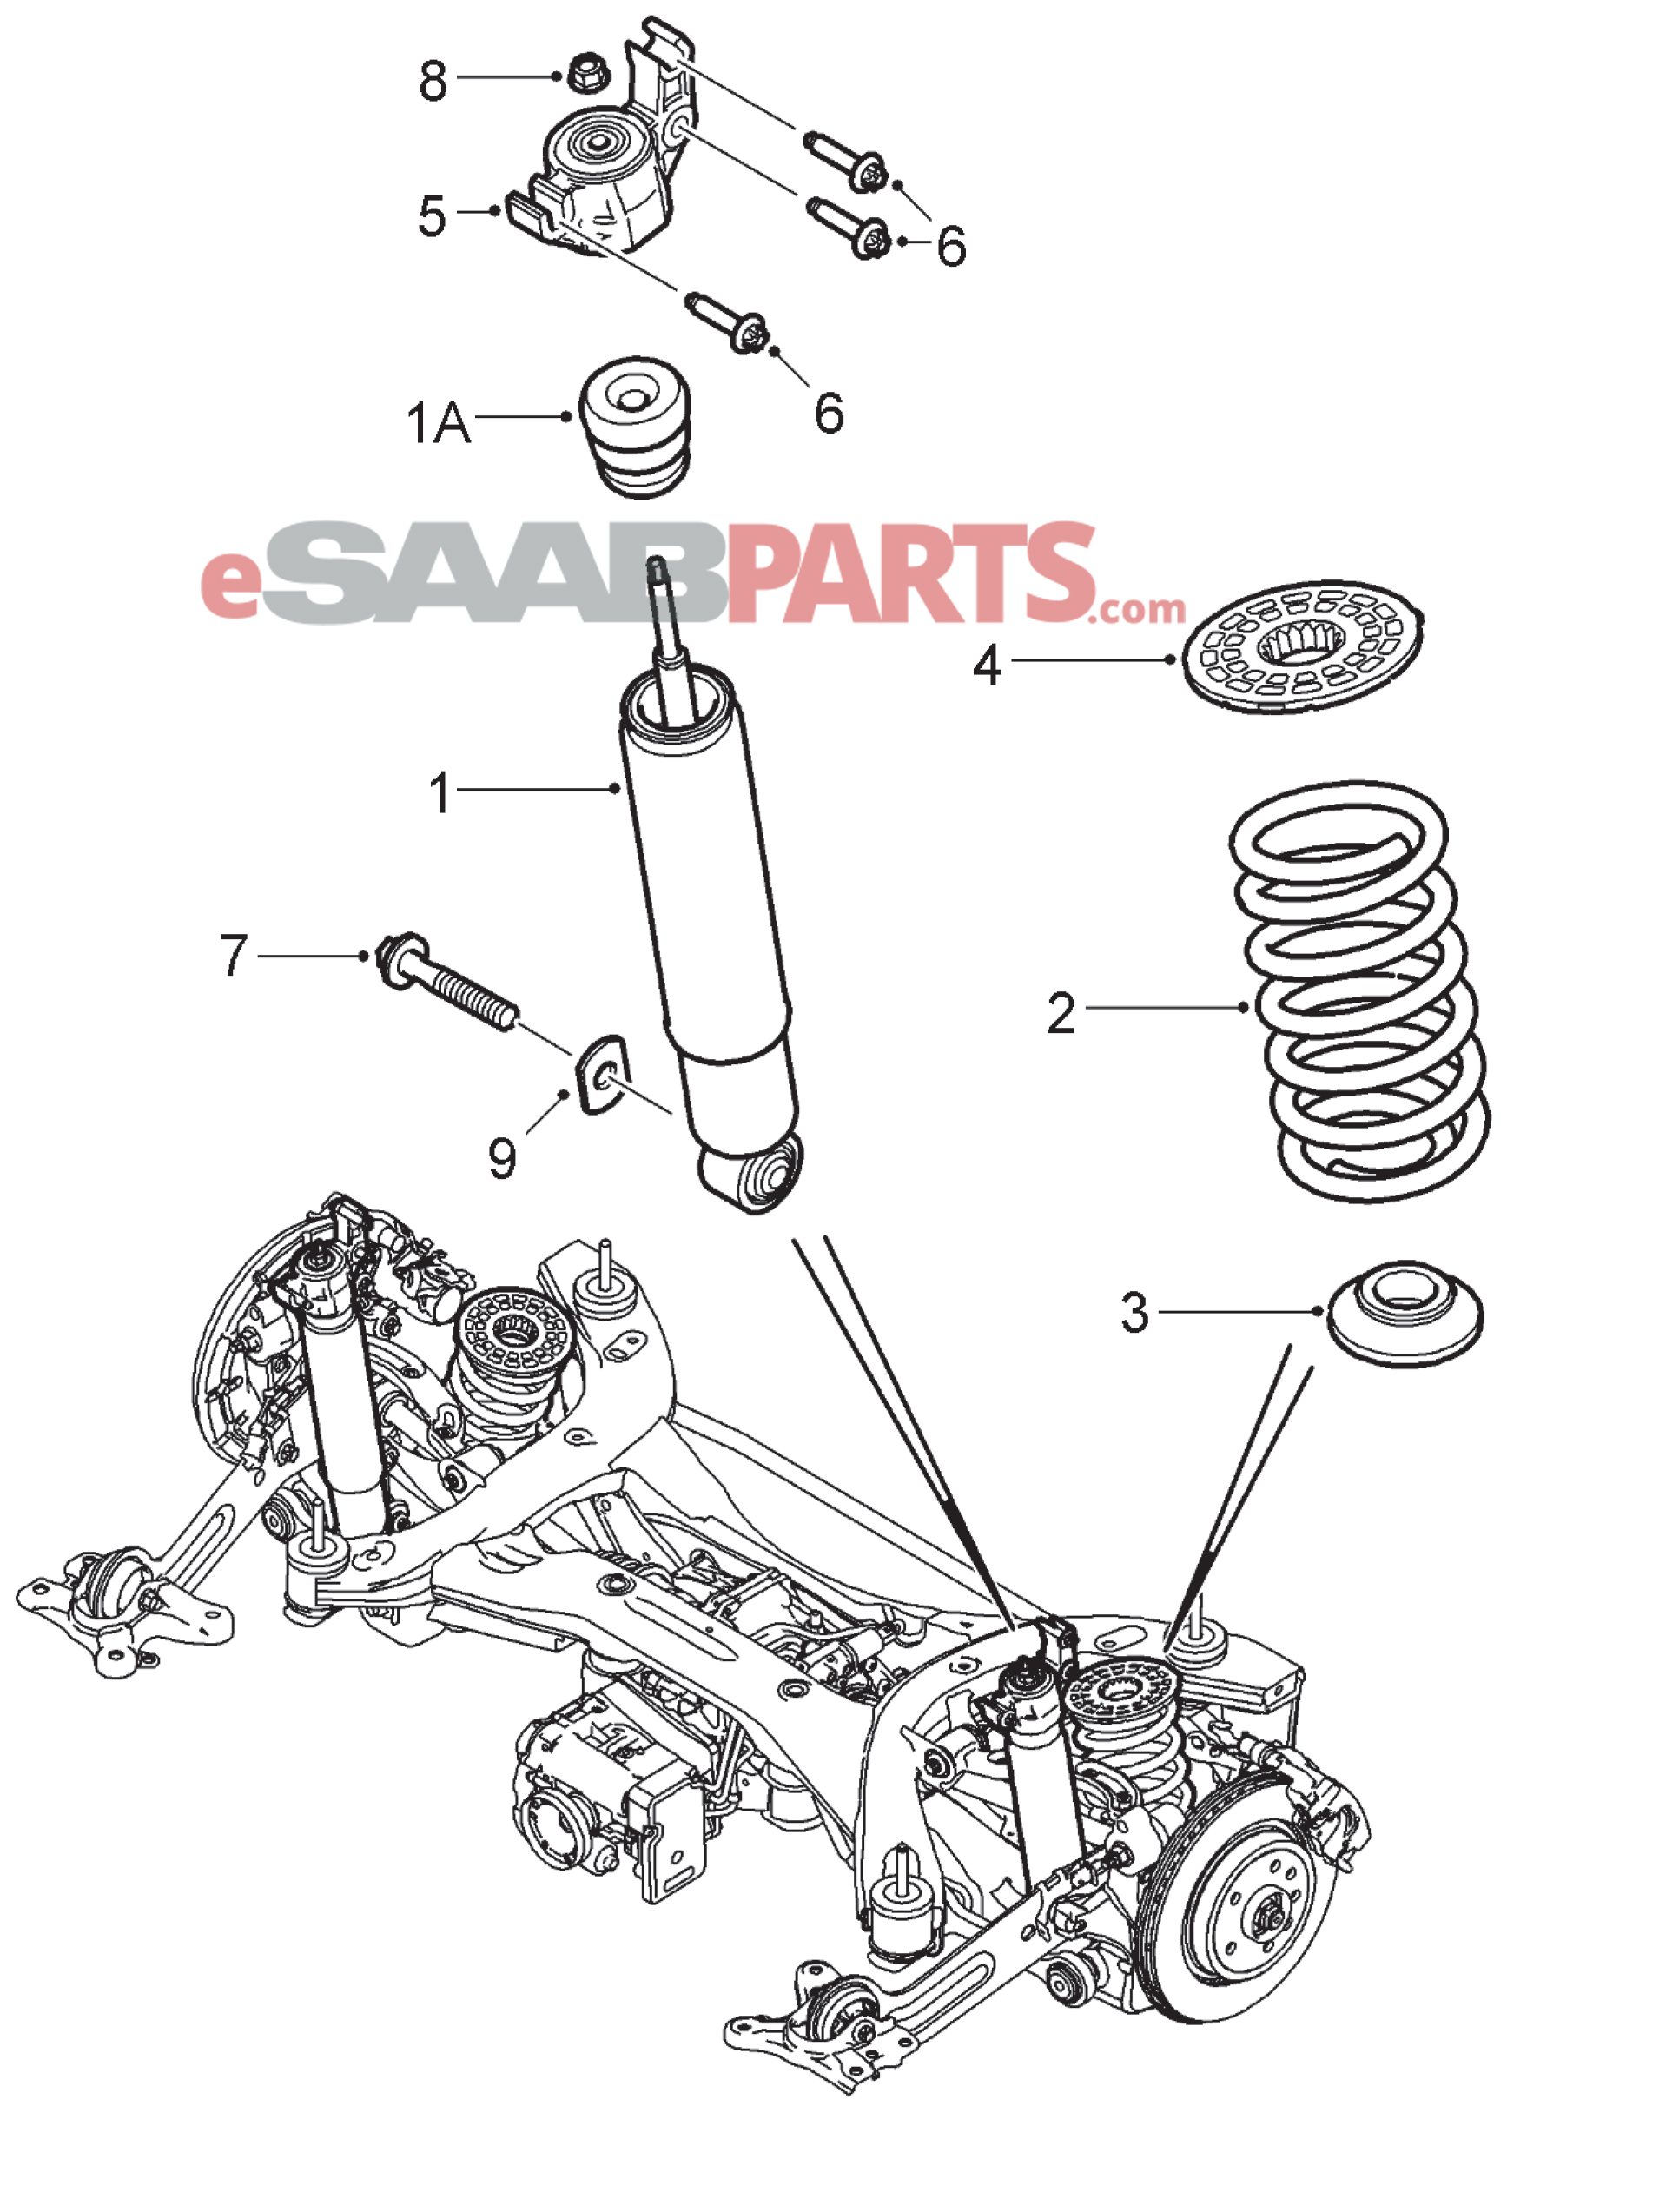 90538496 saab spring support rear genuine saab parts from rh esaabparts com saab 9000 front suspension diagram saab 9 7x air suspension diagram